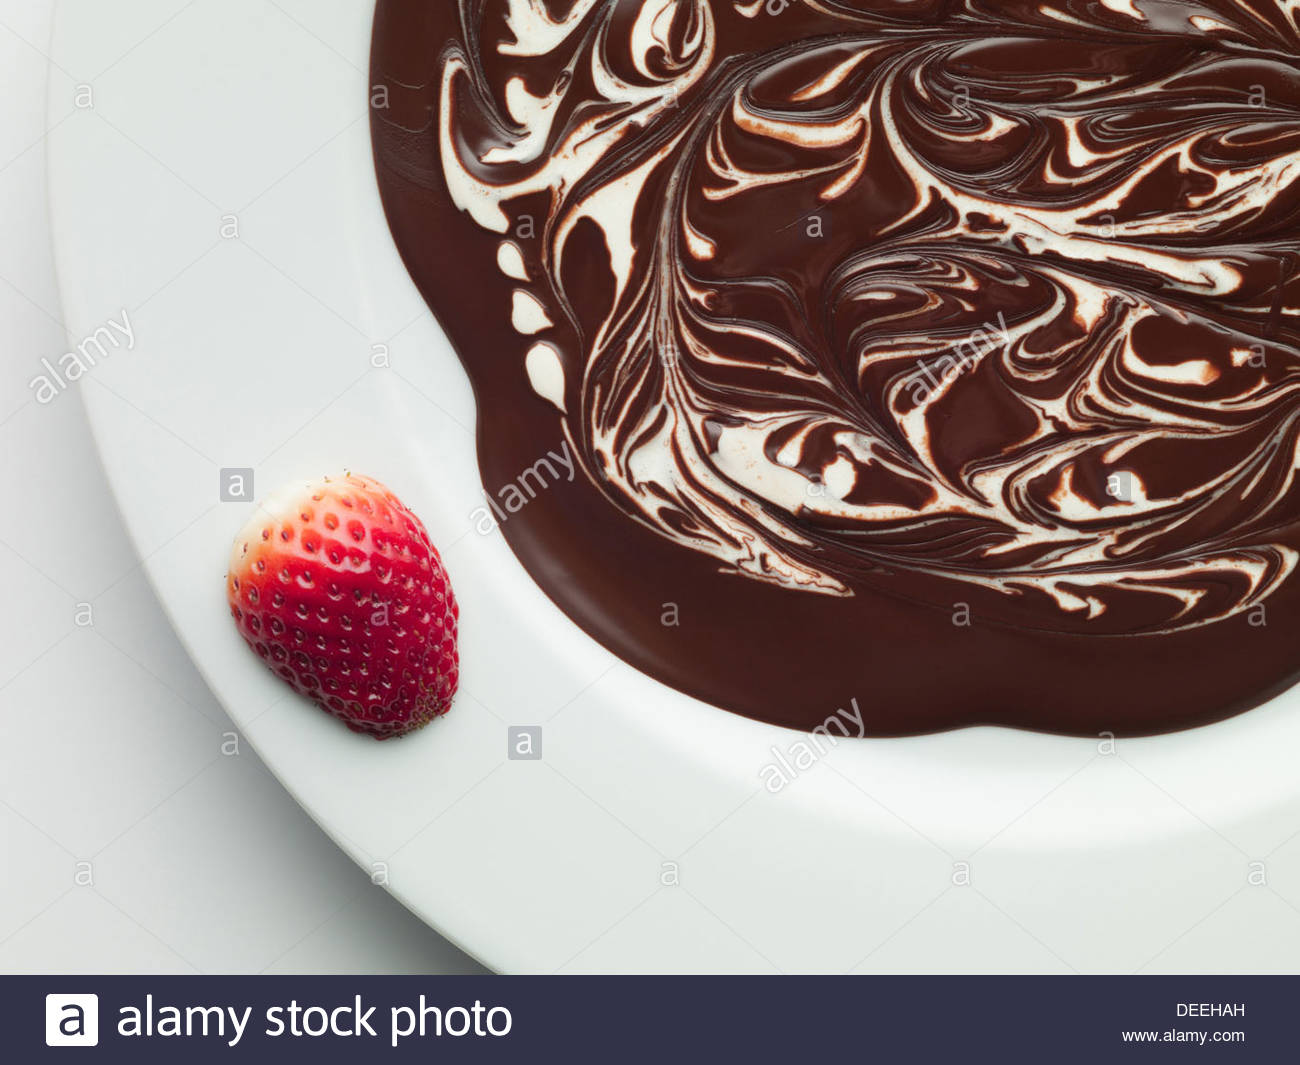 Strawberry on bowl of melted chocolate - Stock Image